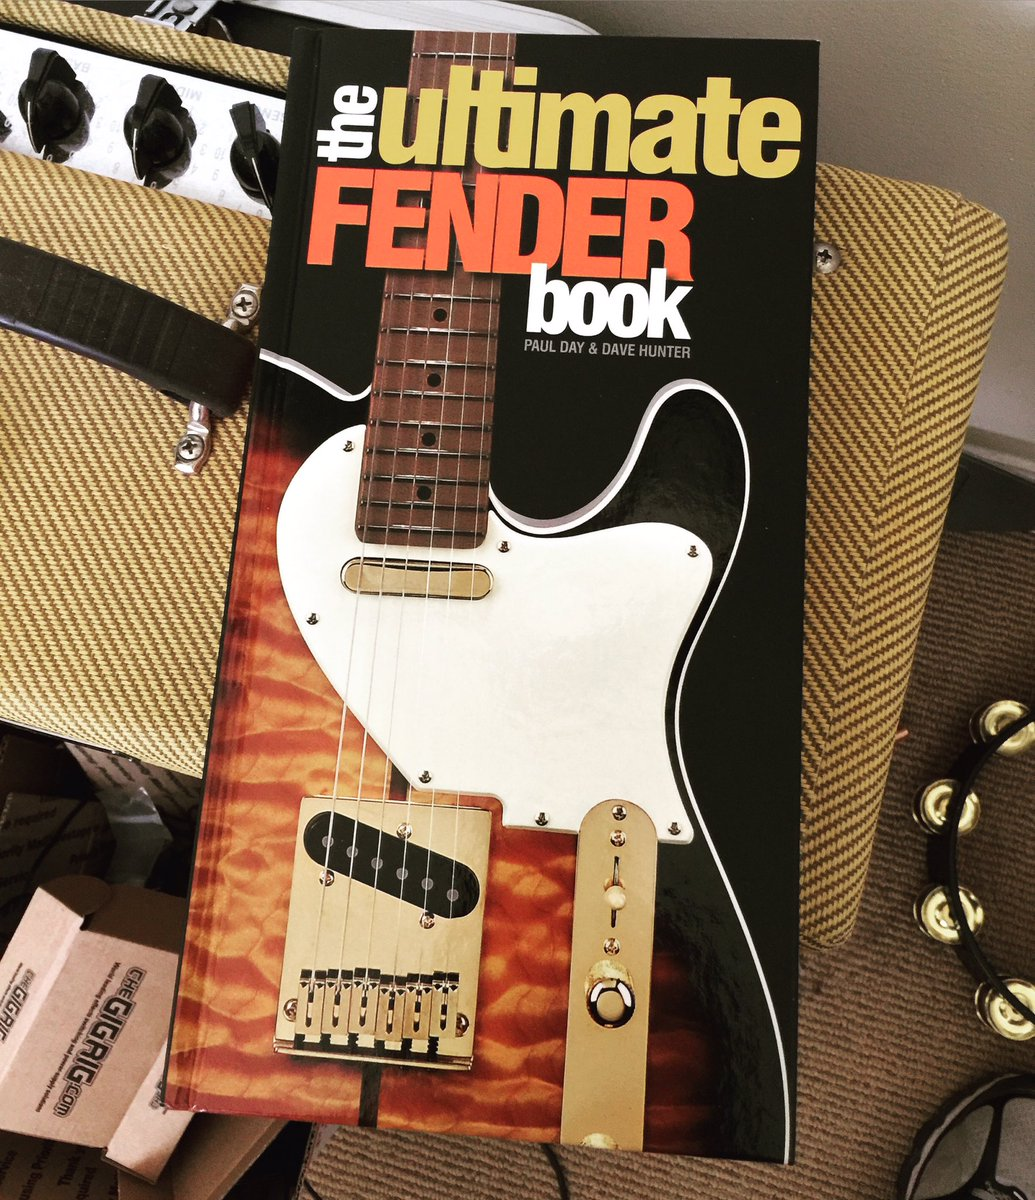 My thoughtful Mom found this book in a Sam's Club. Very good read for @Fender fans. https://t.co/mZWdNN5oEd